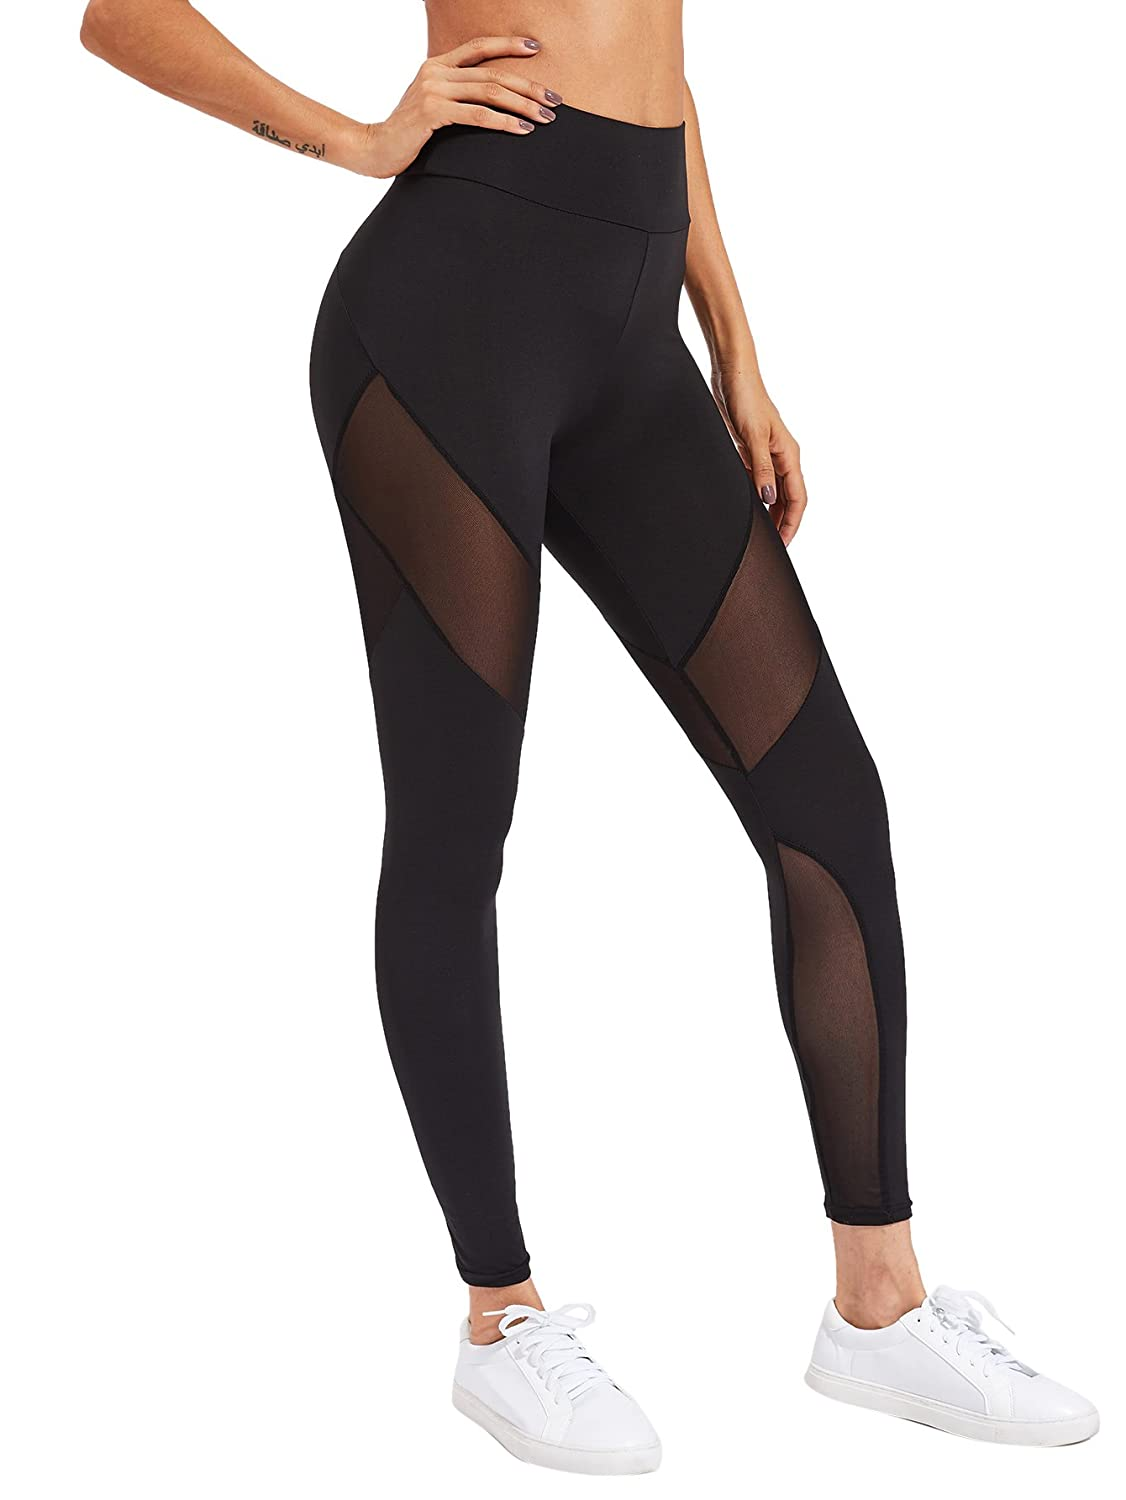 63e5f88302 SweatyRocks Women's Stretchy Skinny Sheer Mesh Insert Workout Leggings Yoga  Tights at Amazon Women's Clothing store: